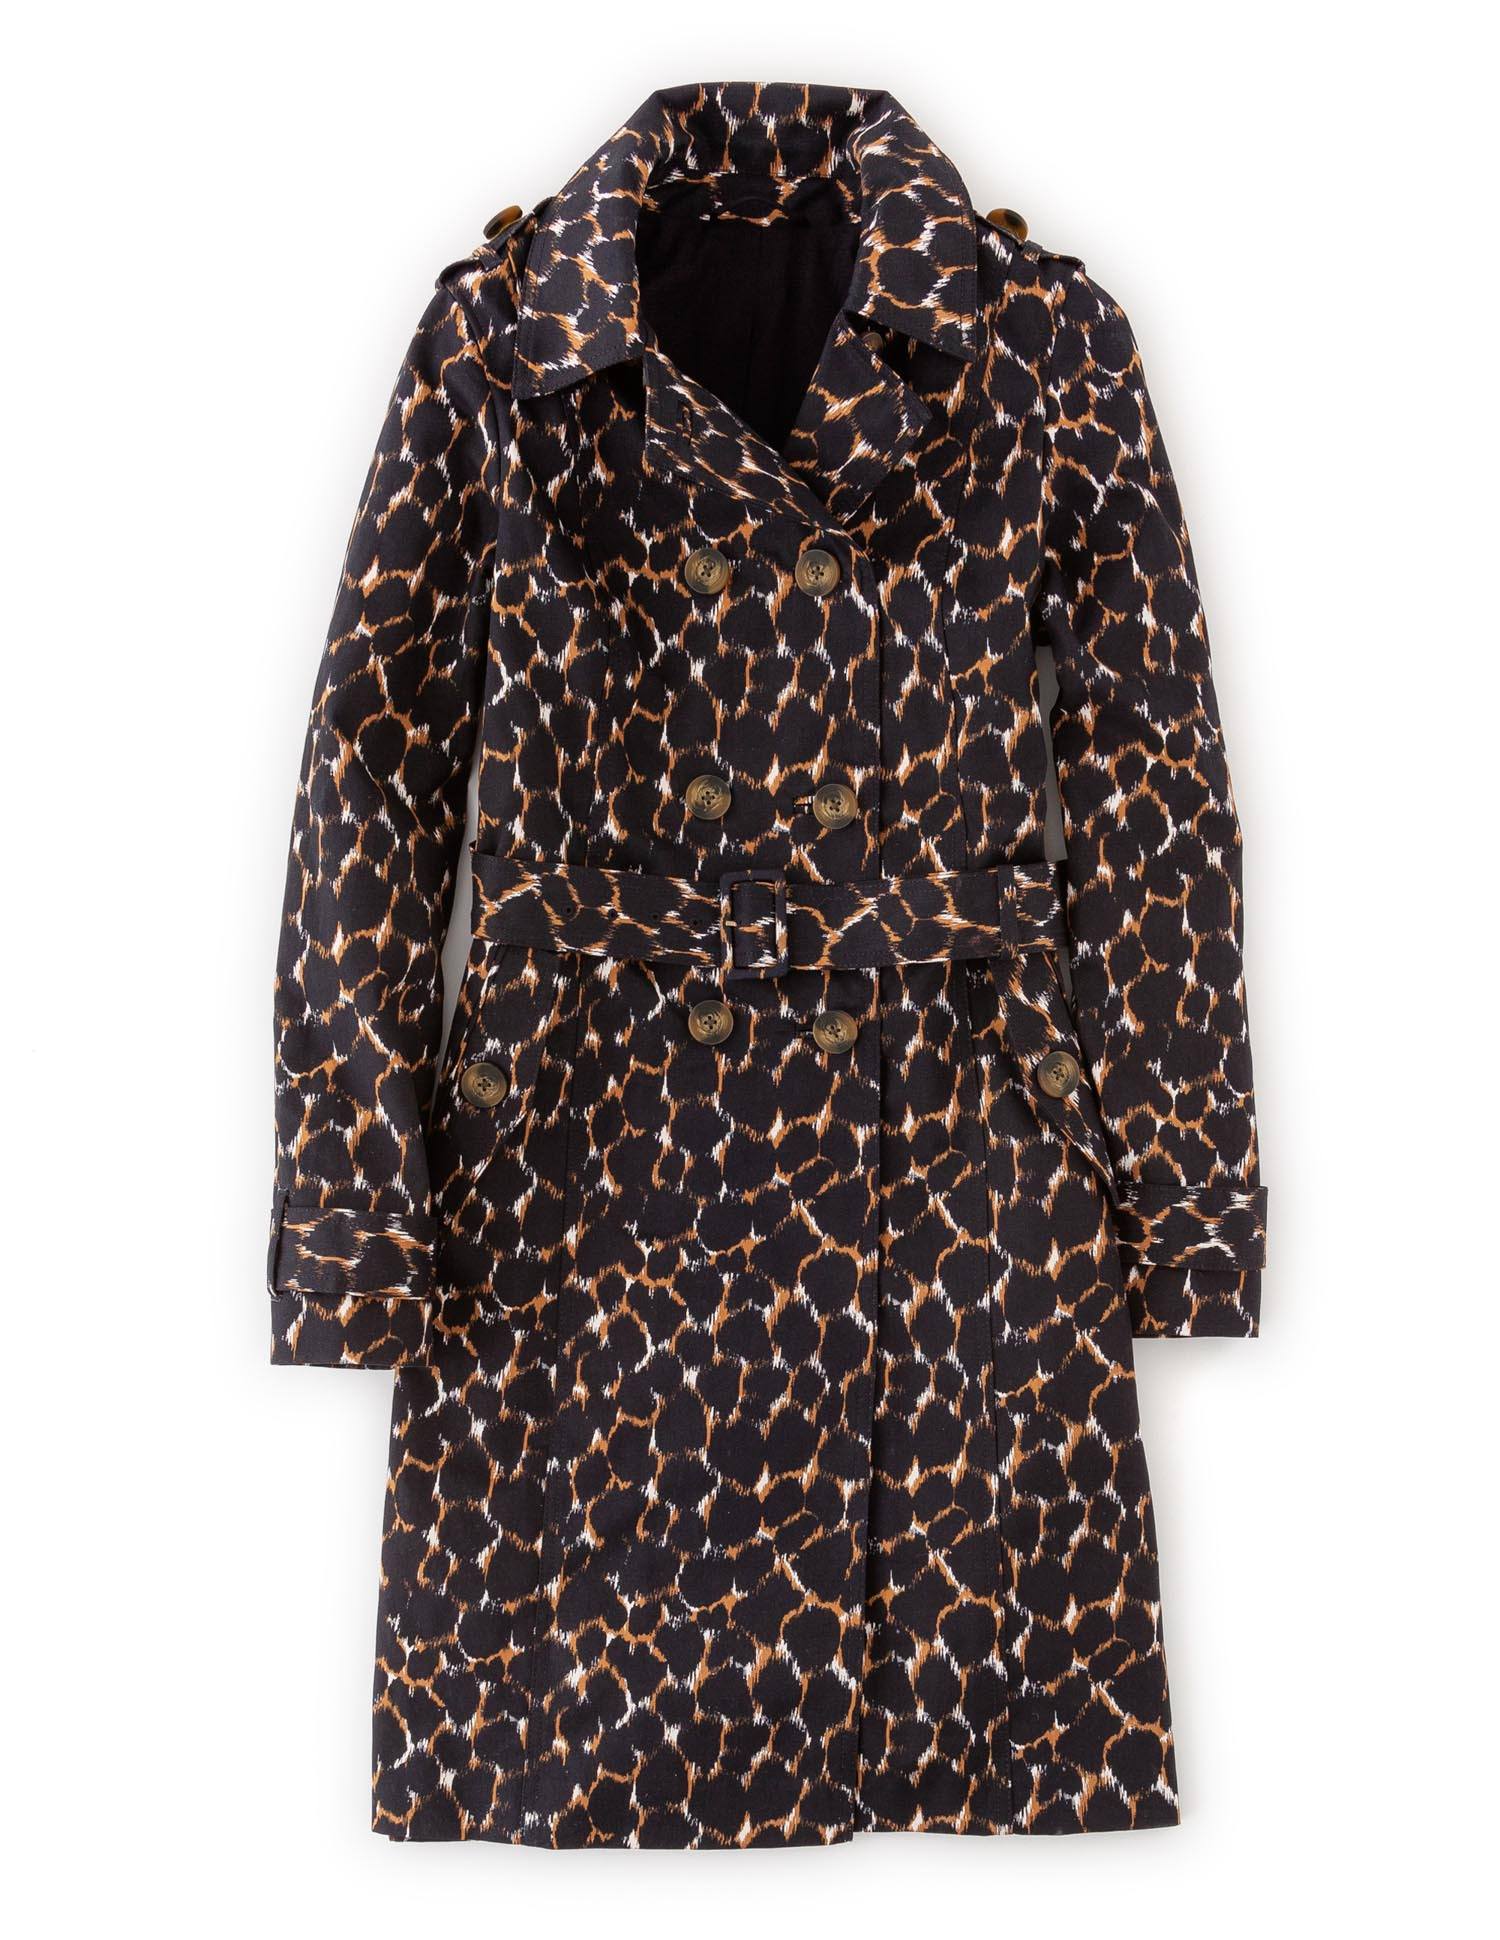 Boden, Leopard Print Trench £129